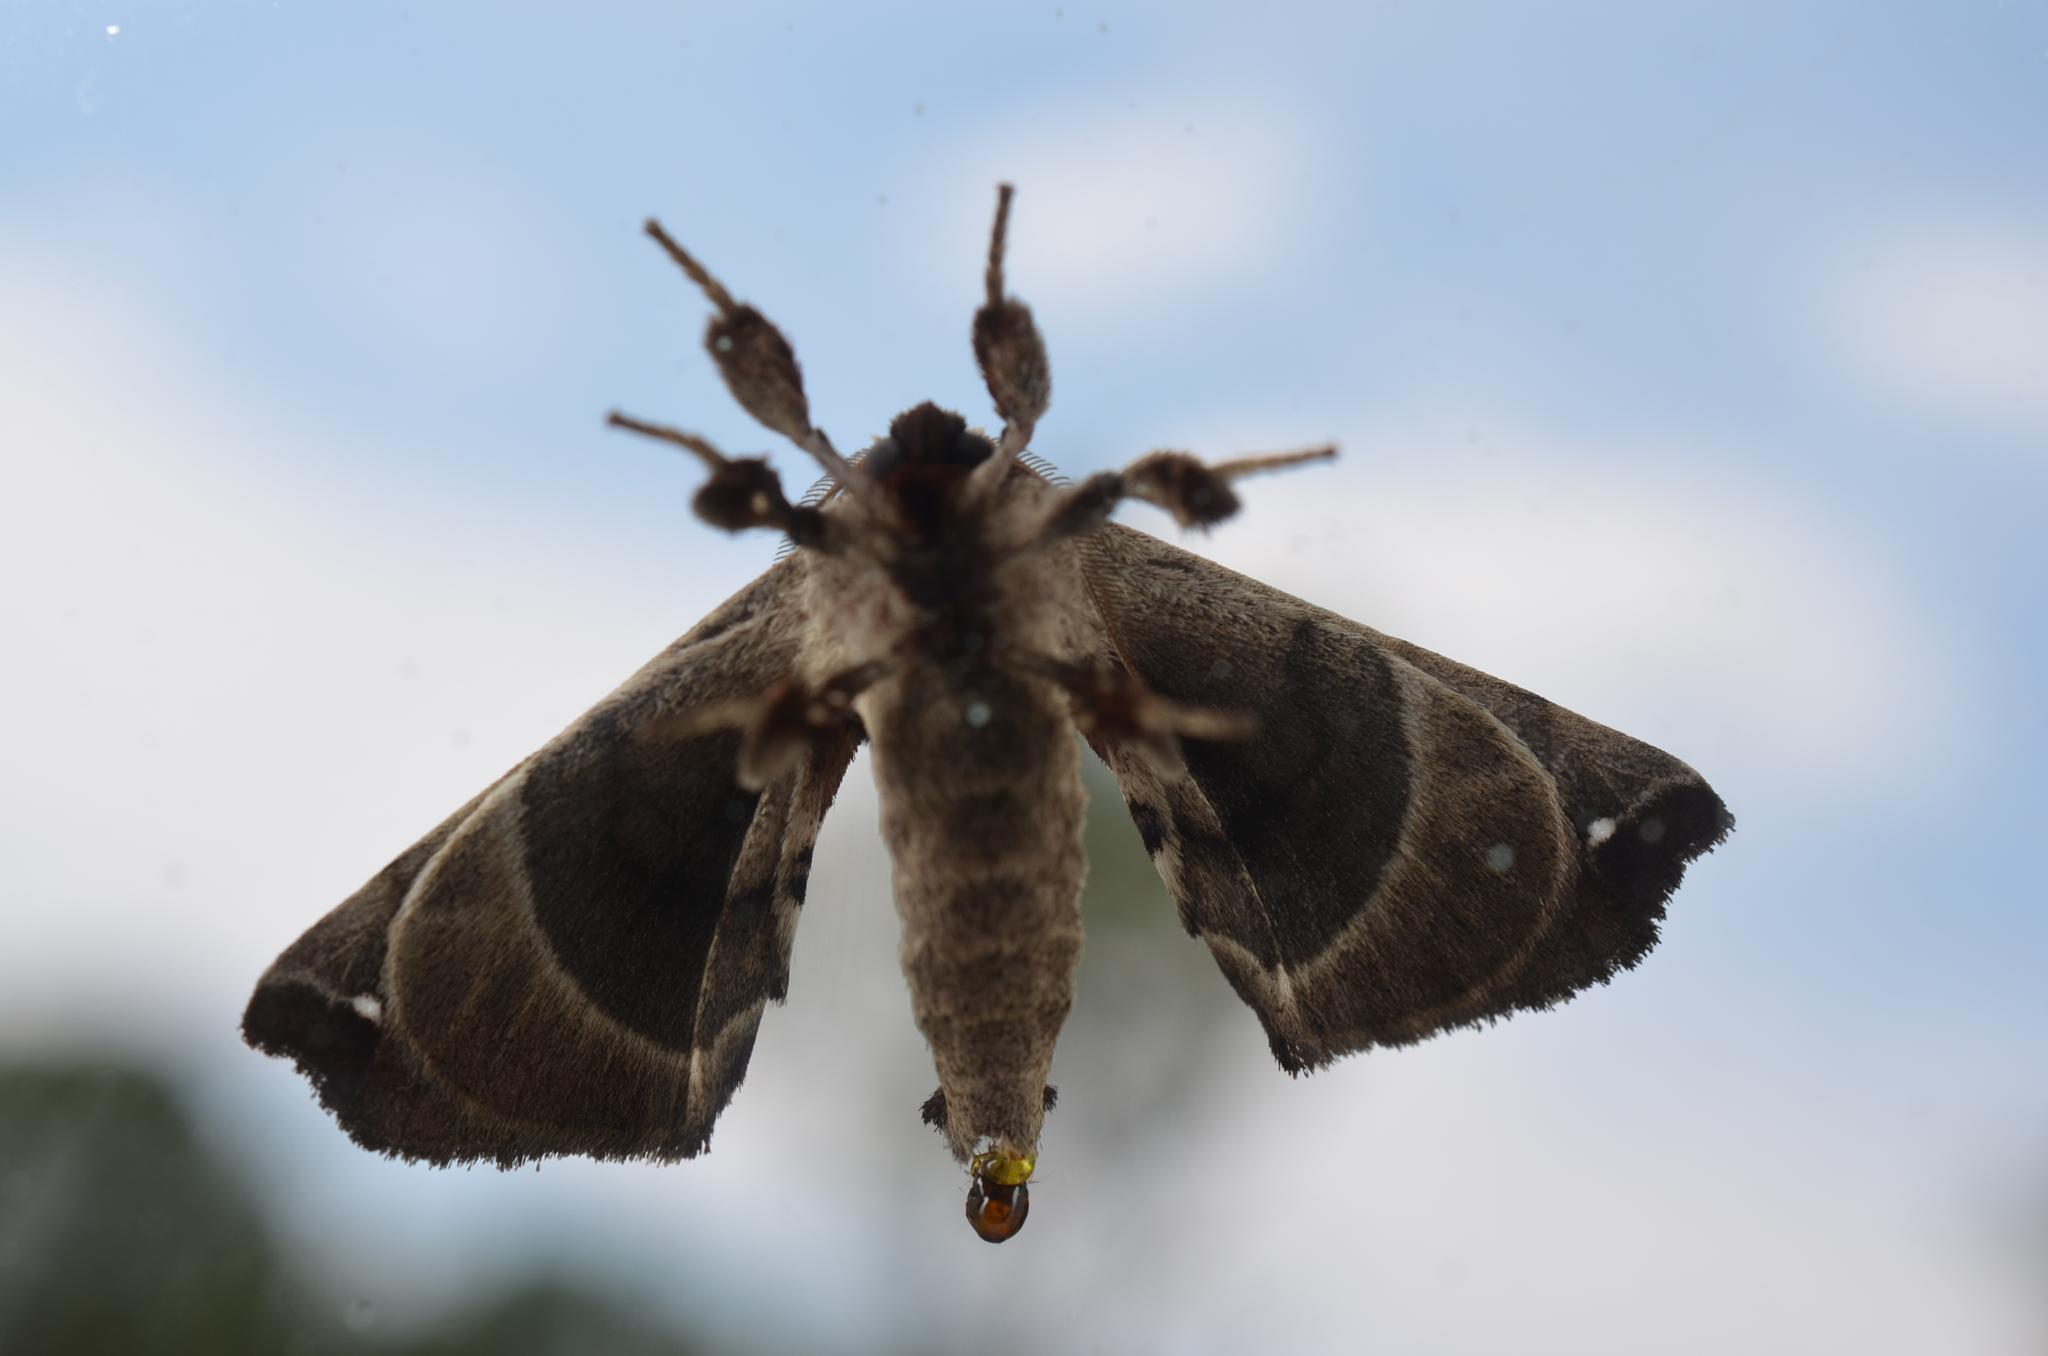 Moth on Glass by theberenguers